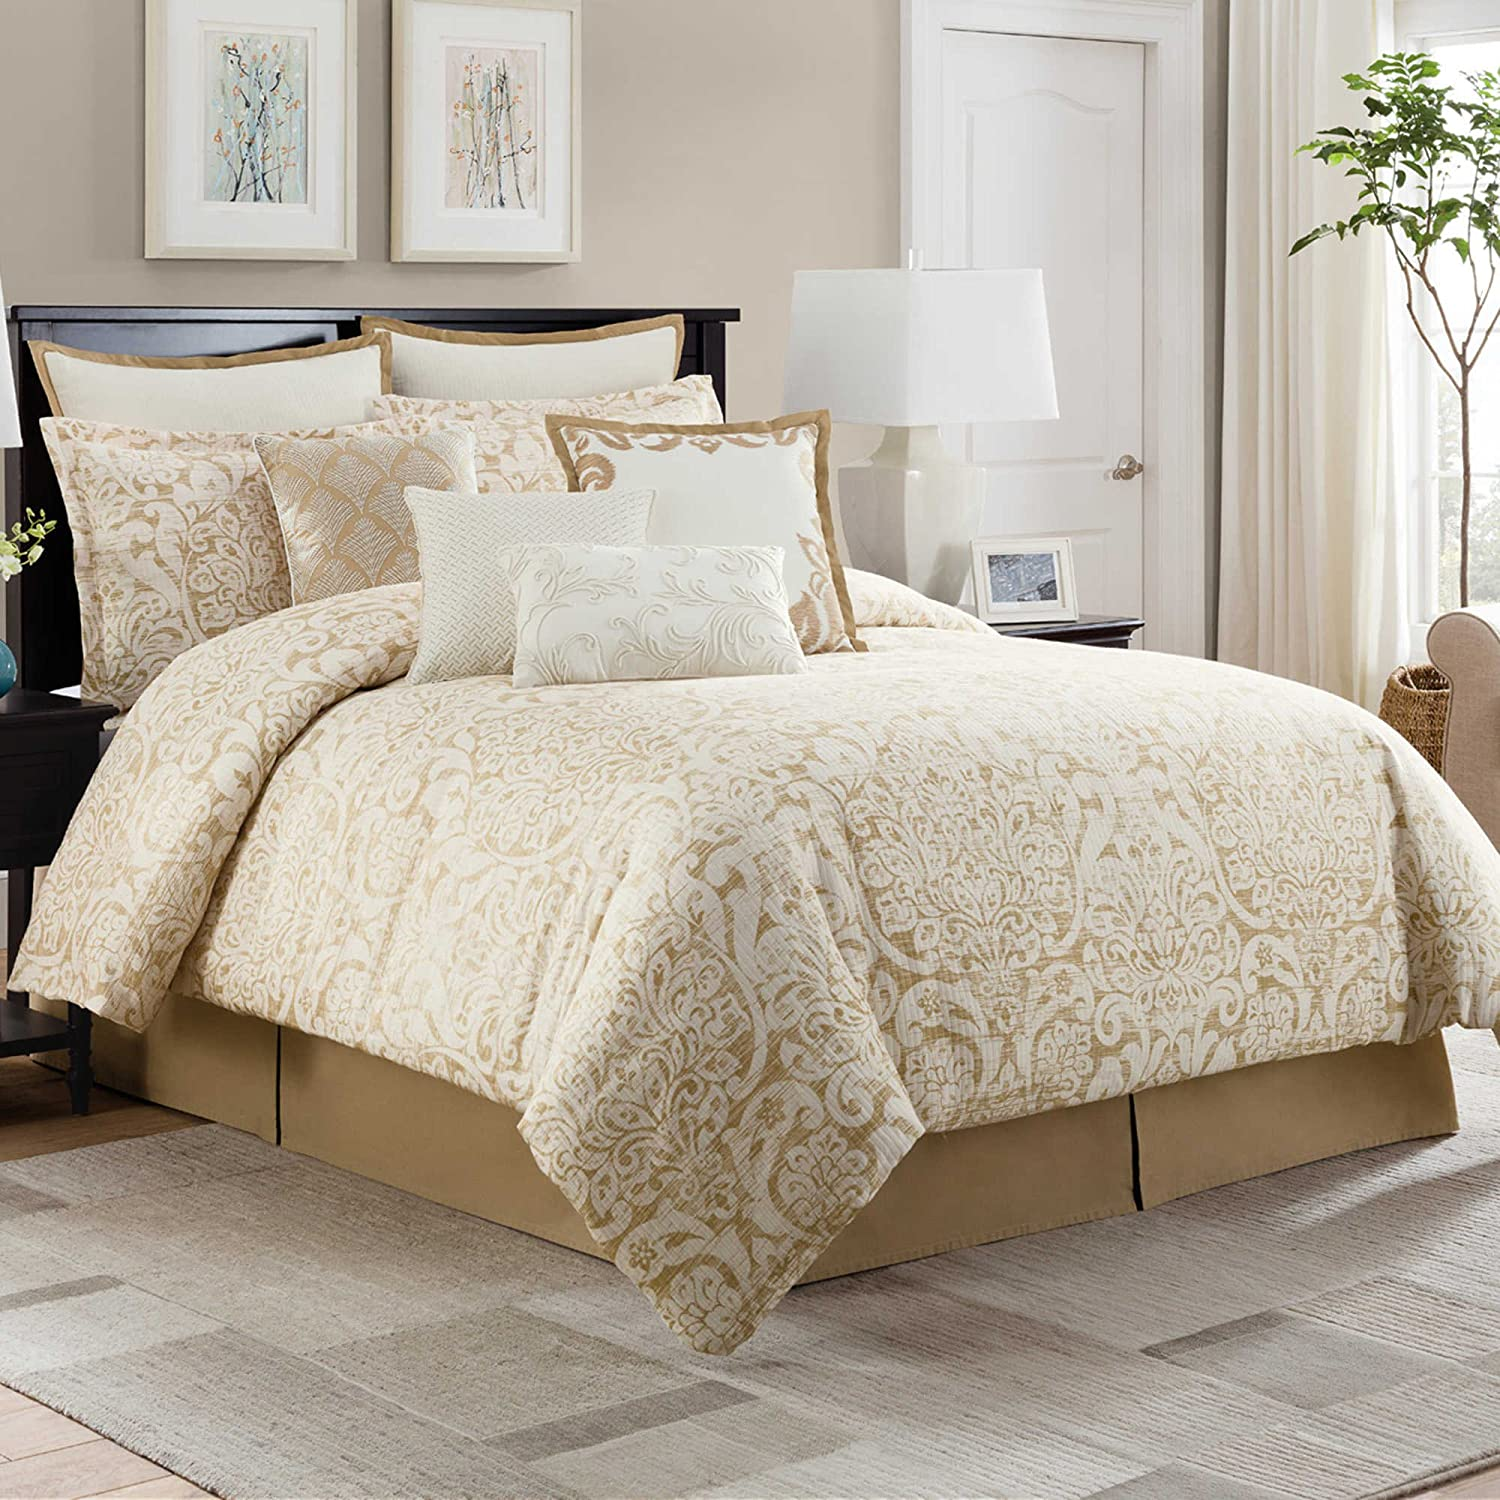 in set full inspirations sets on cal bedding outstanding size best california comforter quality images of wynhurst bedroom king